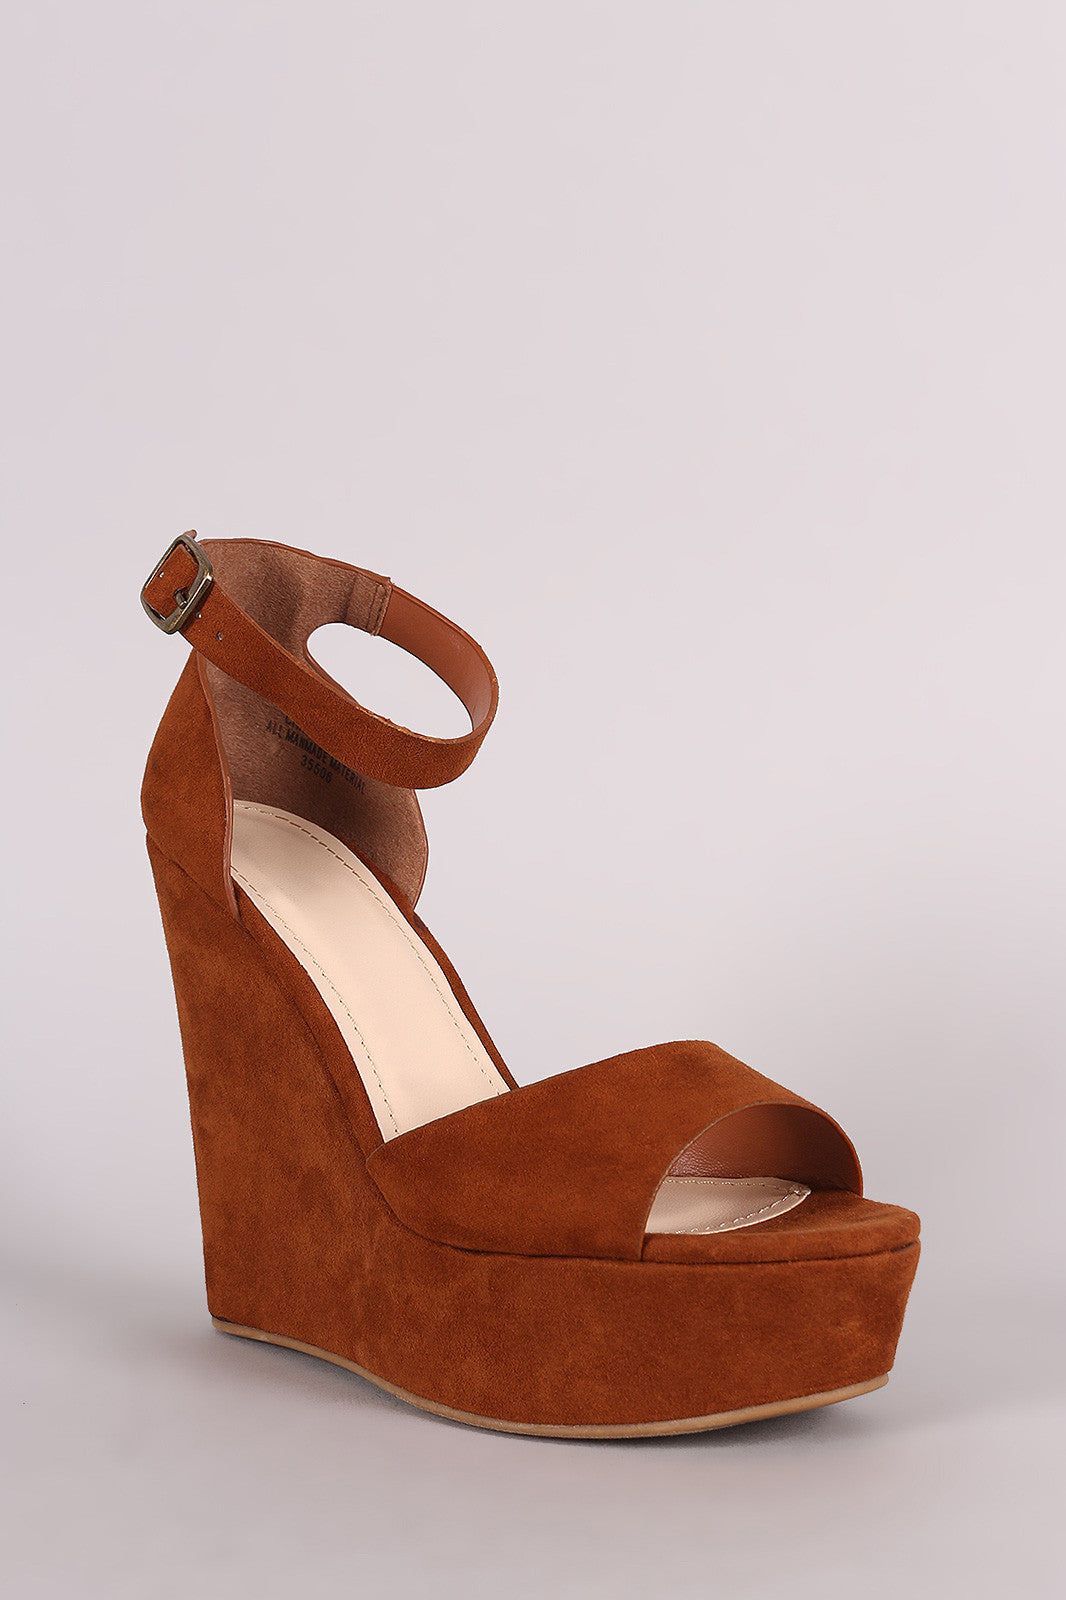 Bamboo Suede One Band Platform Wedge - Thick 'N' Curvy Shop - 5